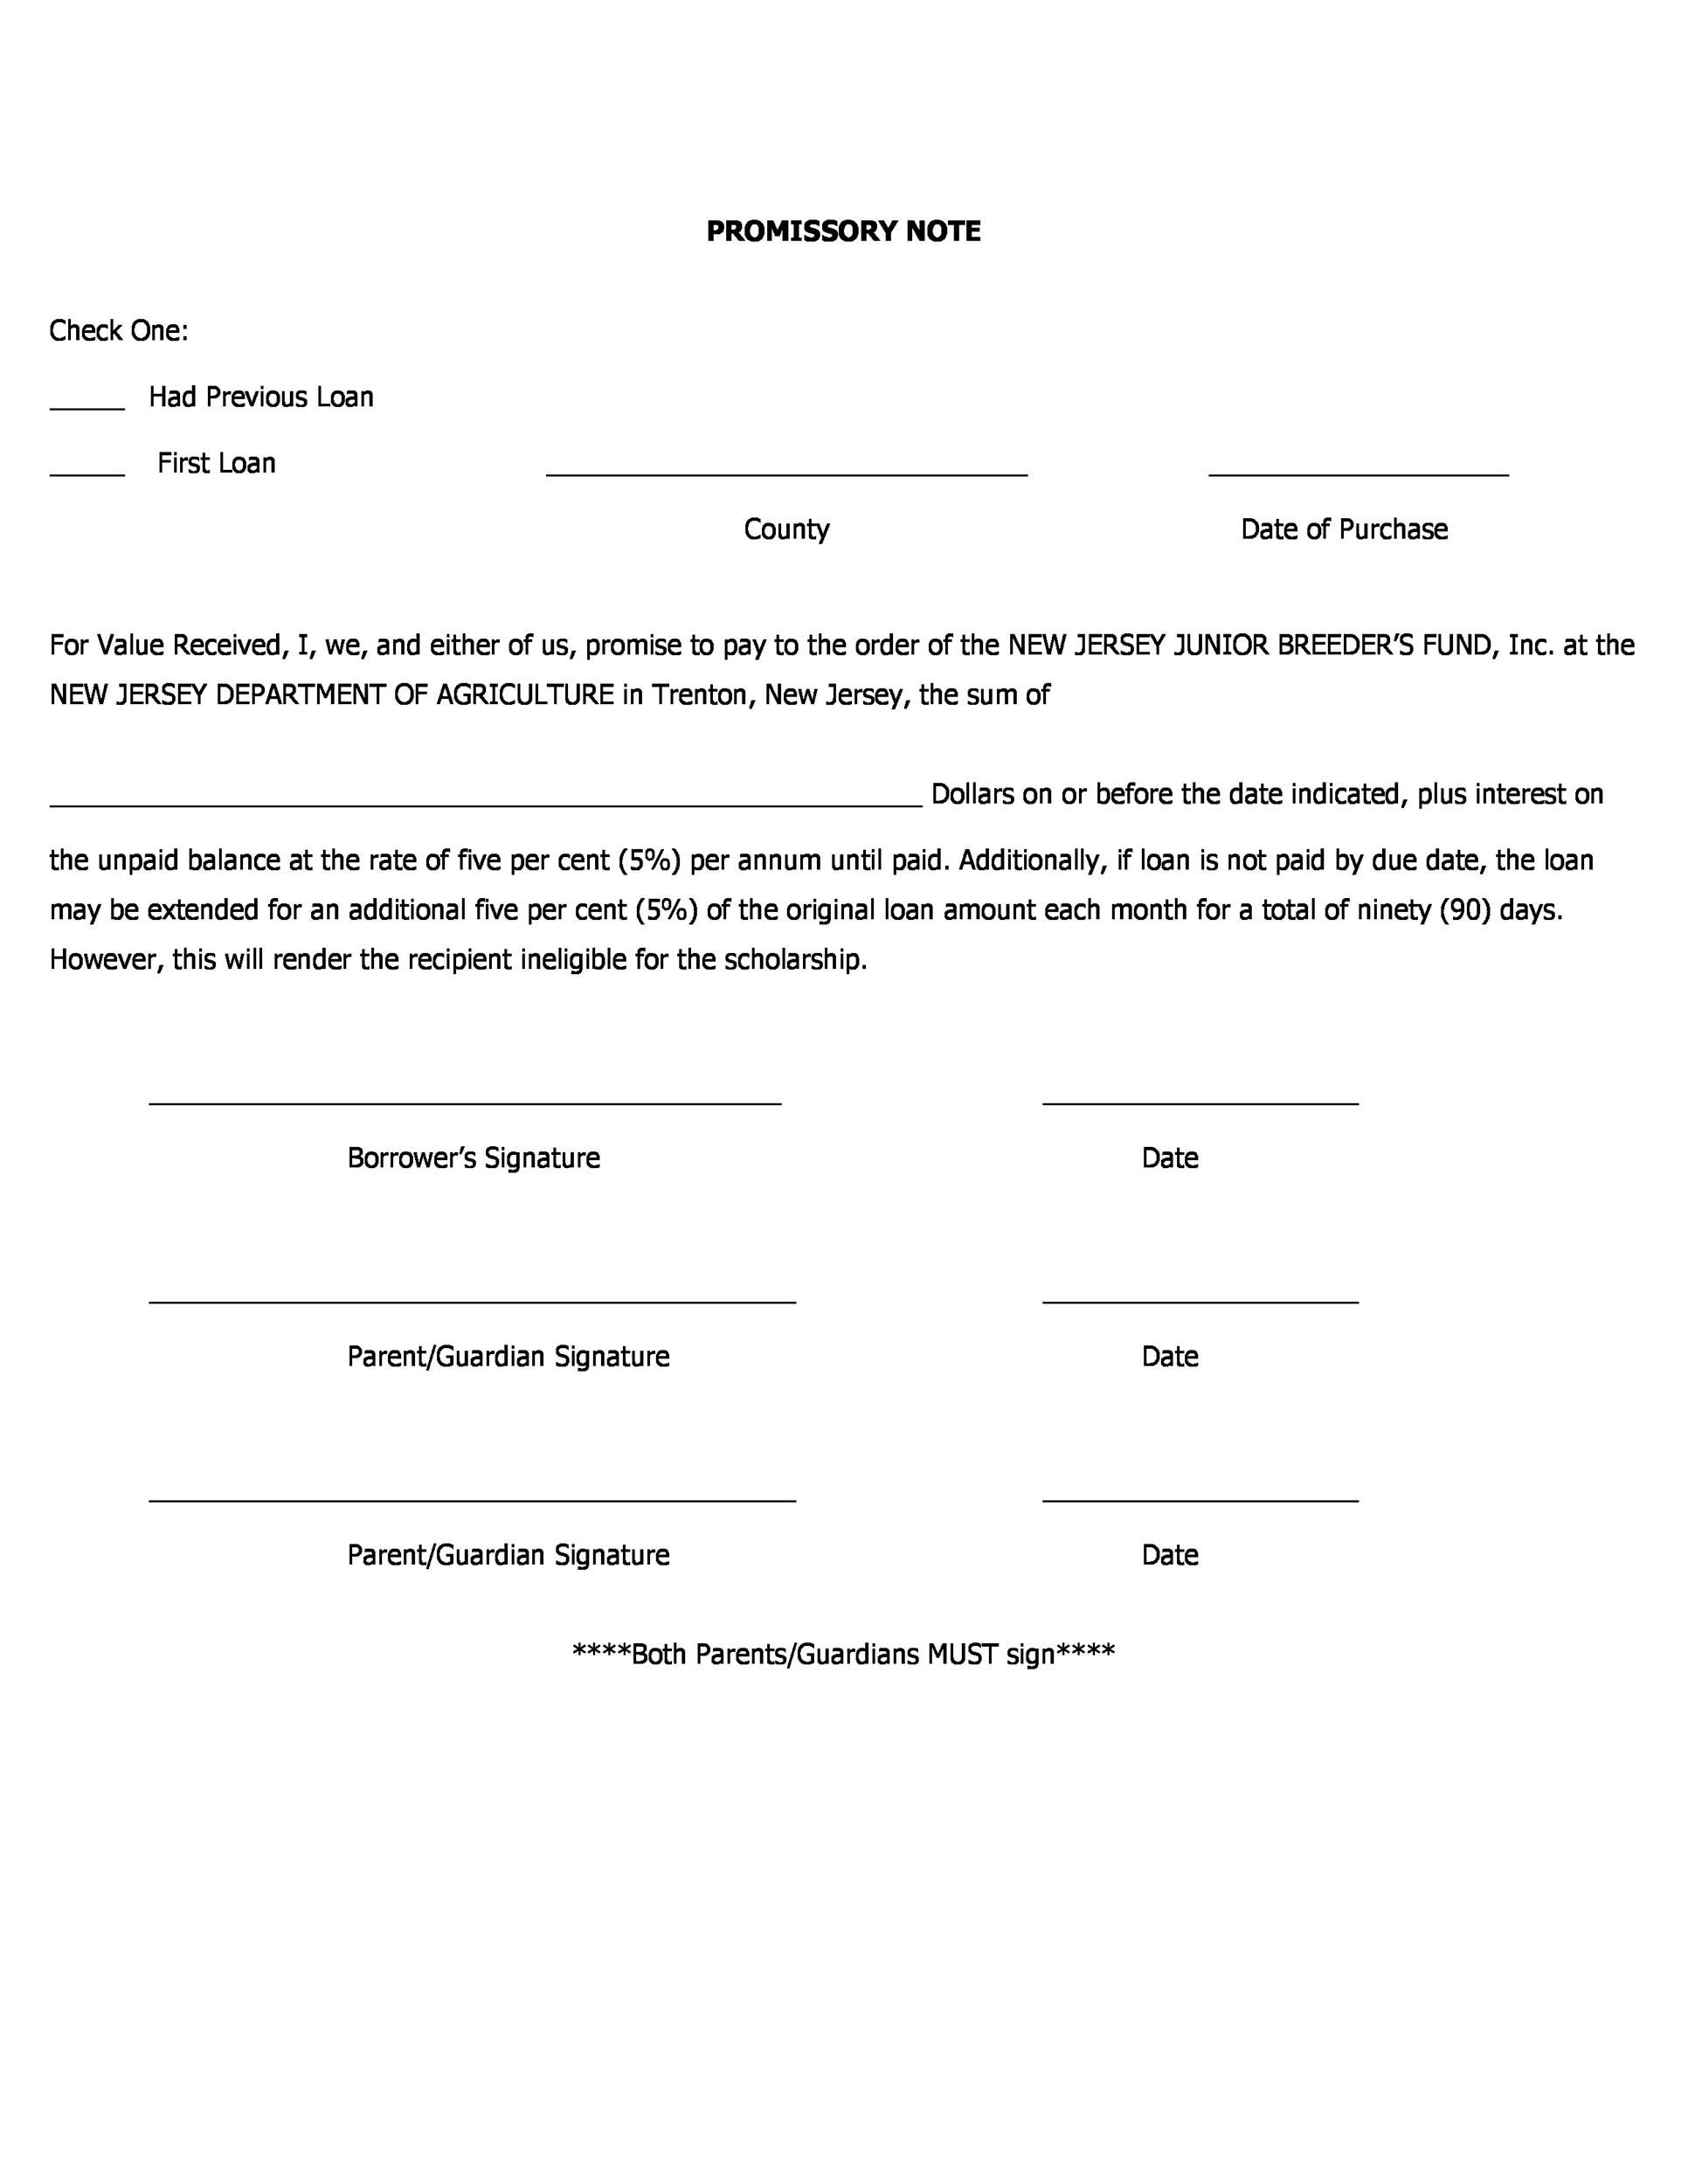 Awesome Printable Promissory Note Template 31  Free Promissory Note Templates